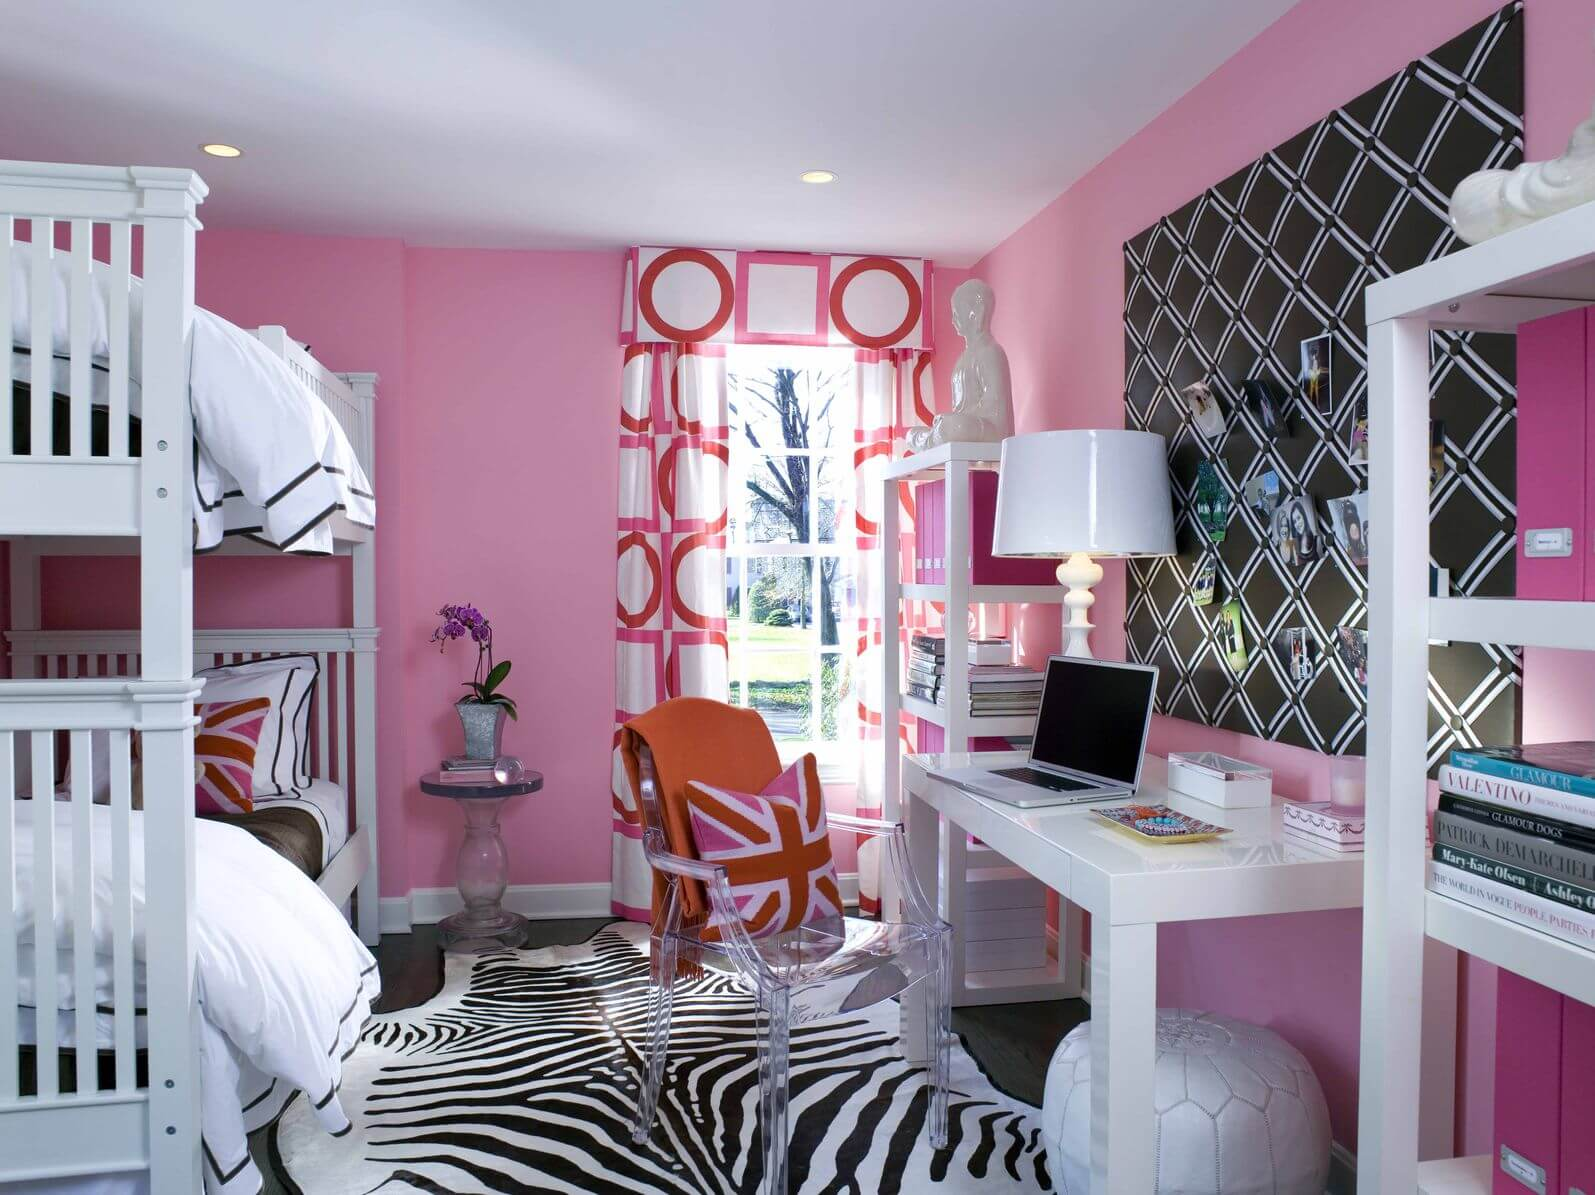 heres an example of a kids room incorporating zebra print with a rug its playful - Rug Design Ideas